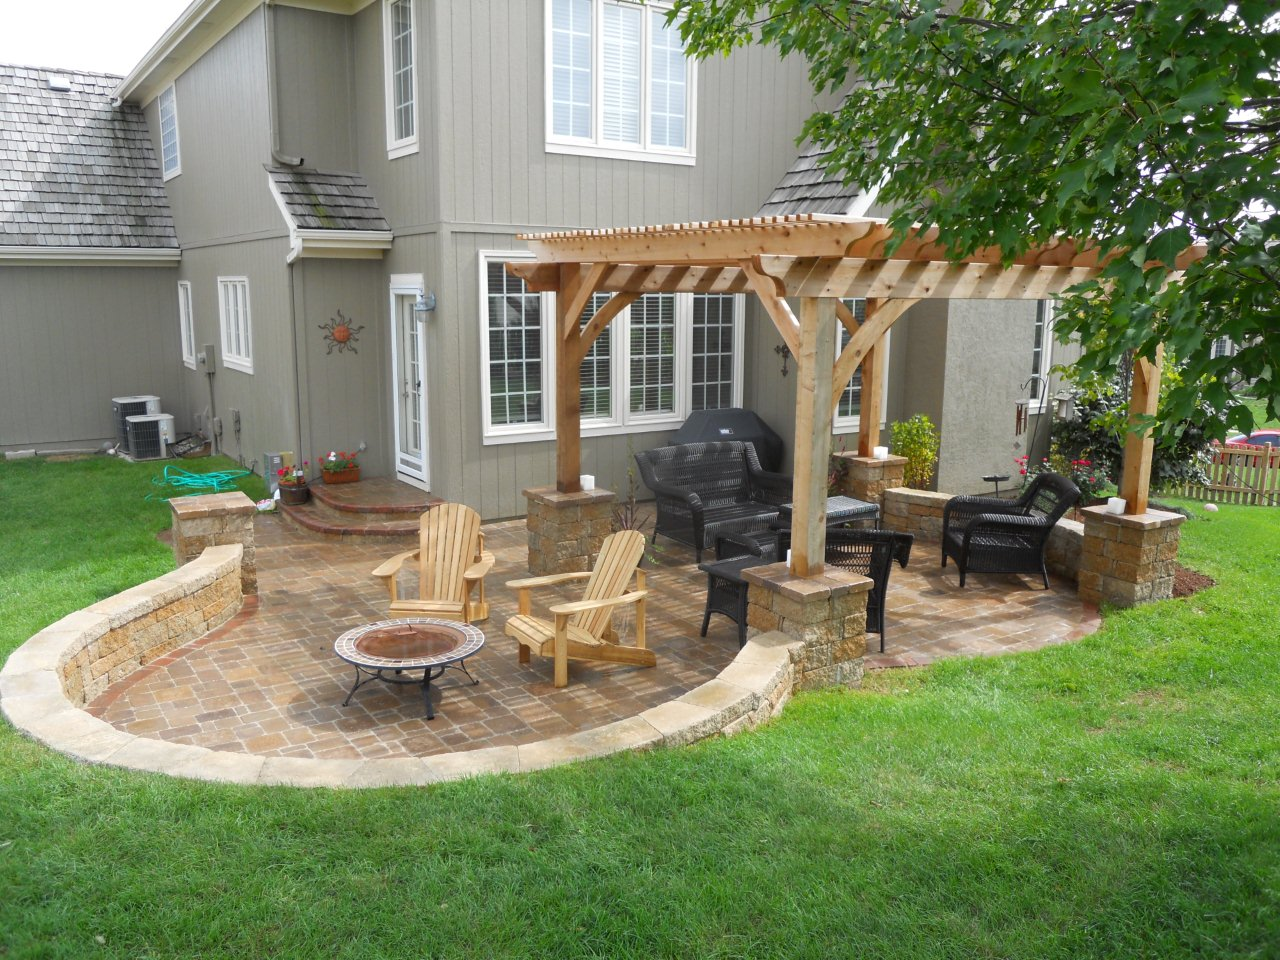 Flagstone Patio Pavers Design Ideas For Backyard Patio ... on Patio And Grass Garden Ideas id=72229